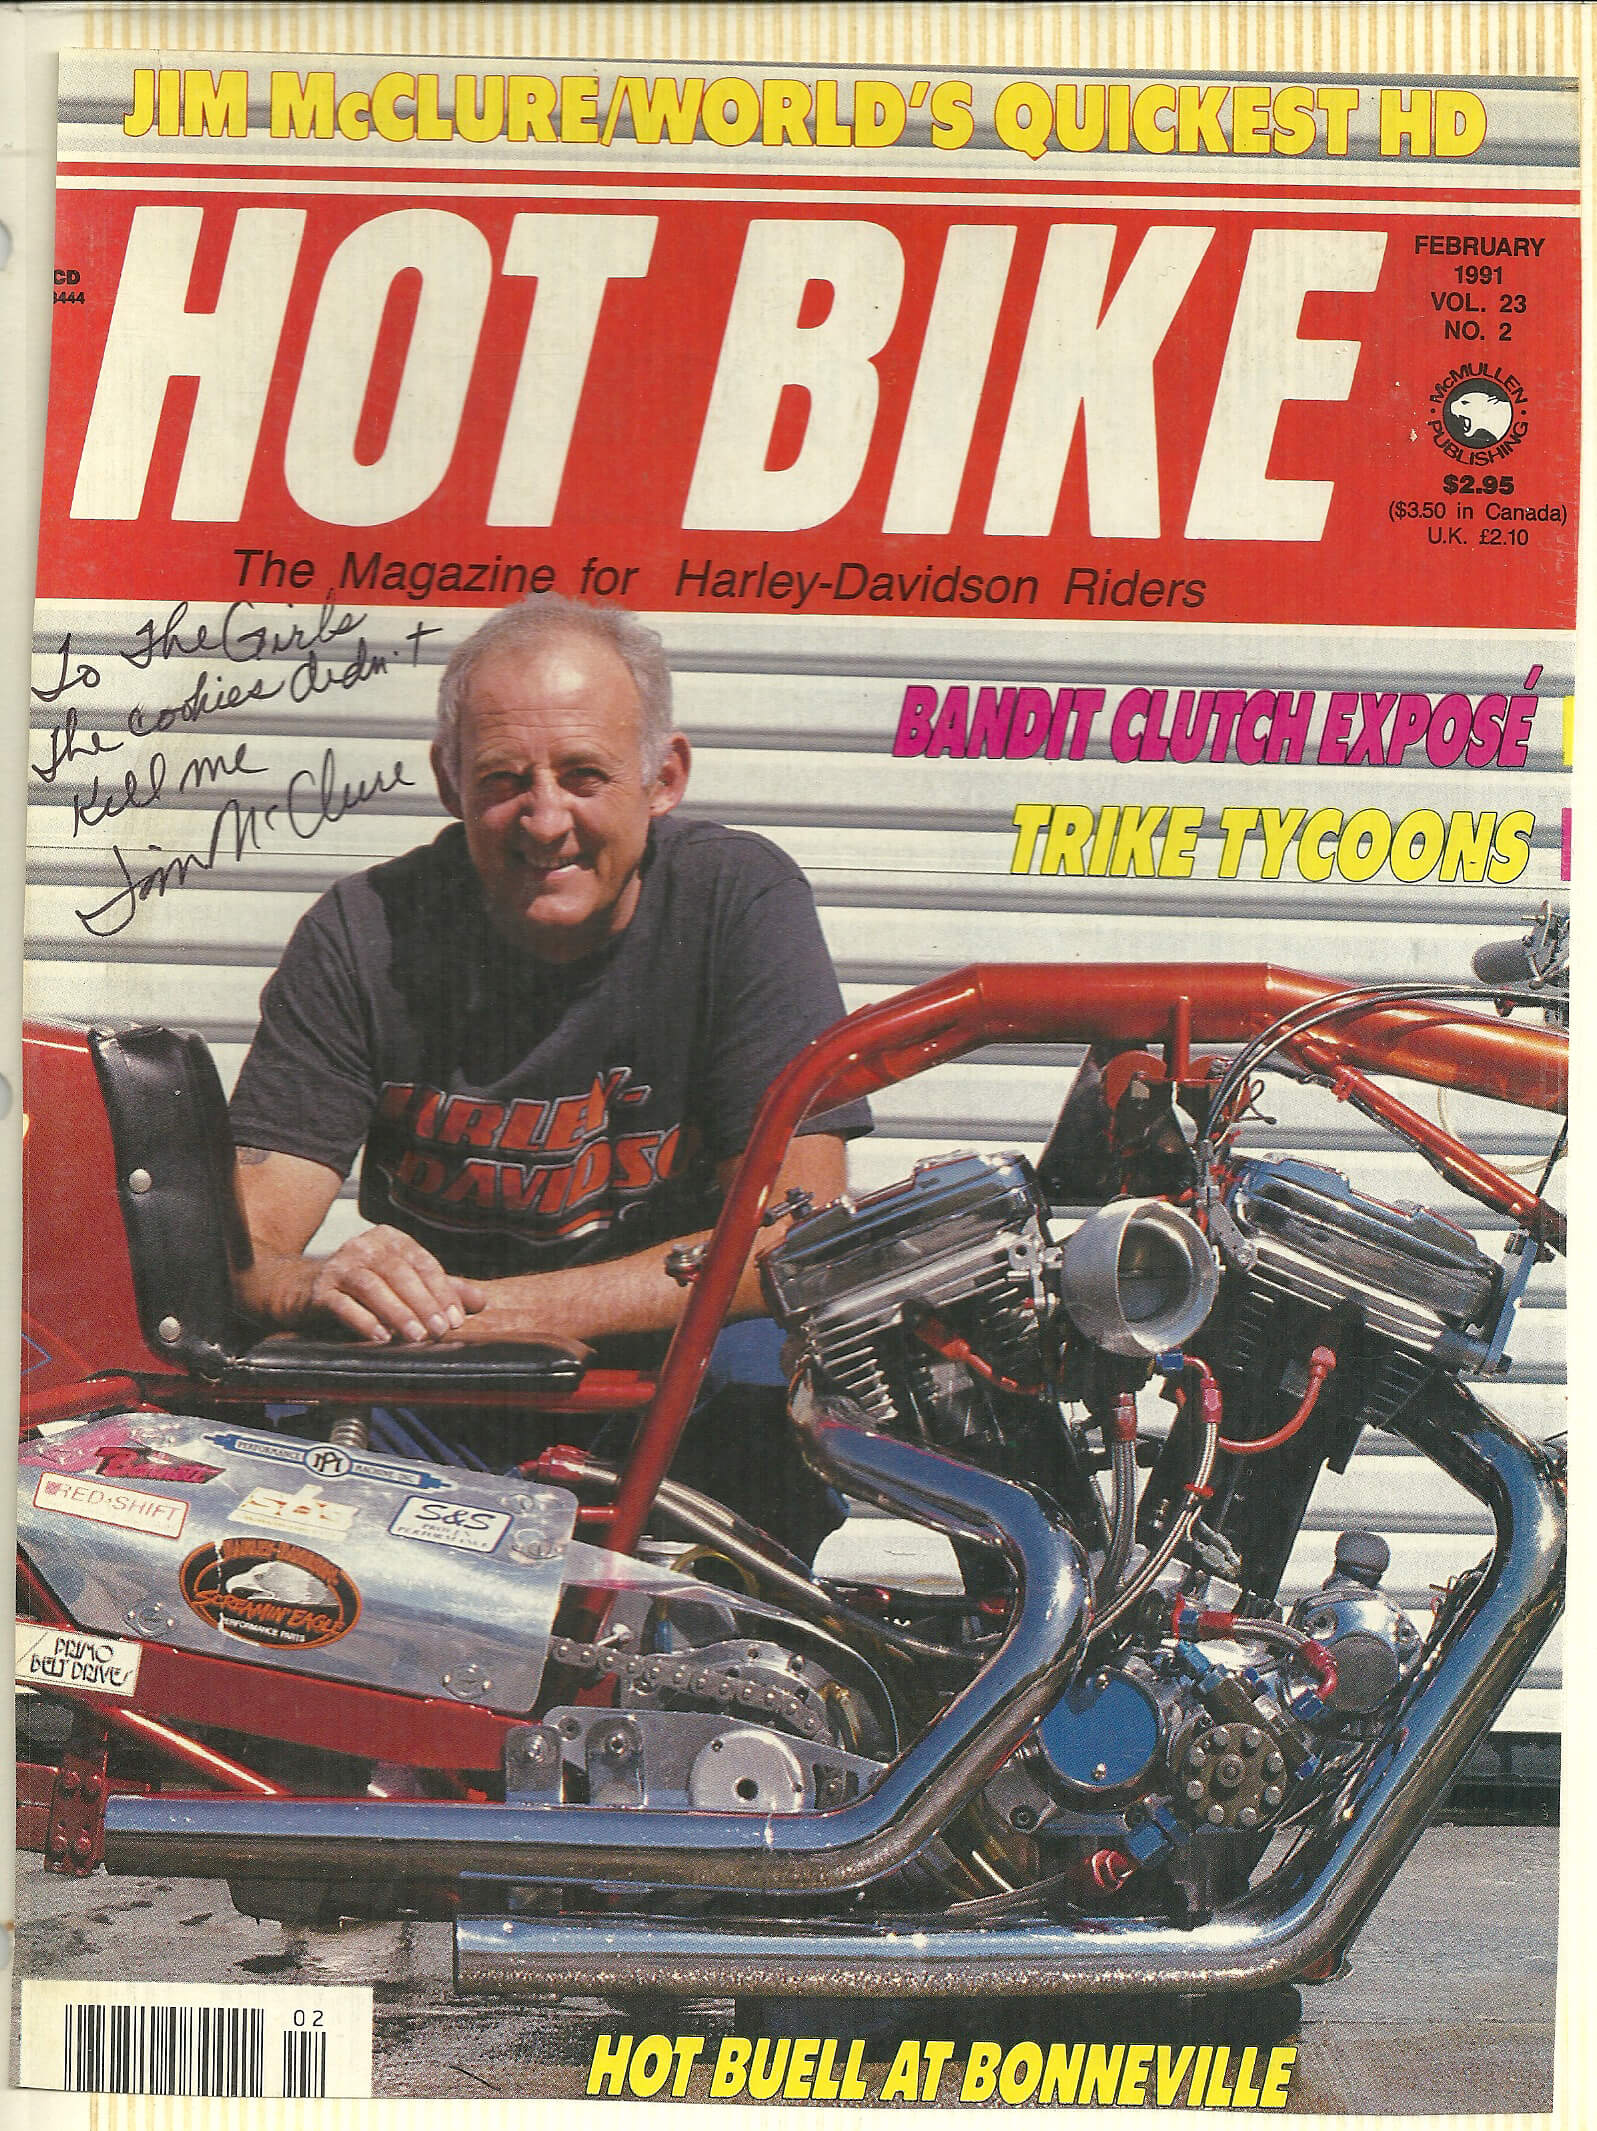 Jim Hot Bike